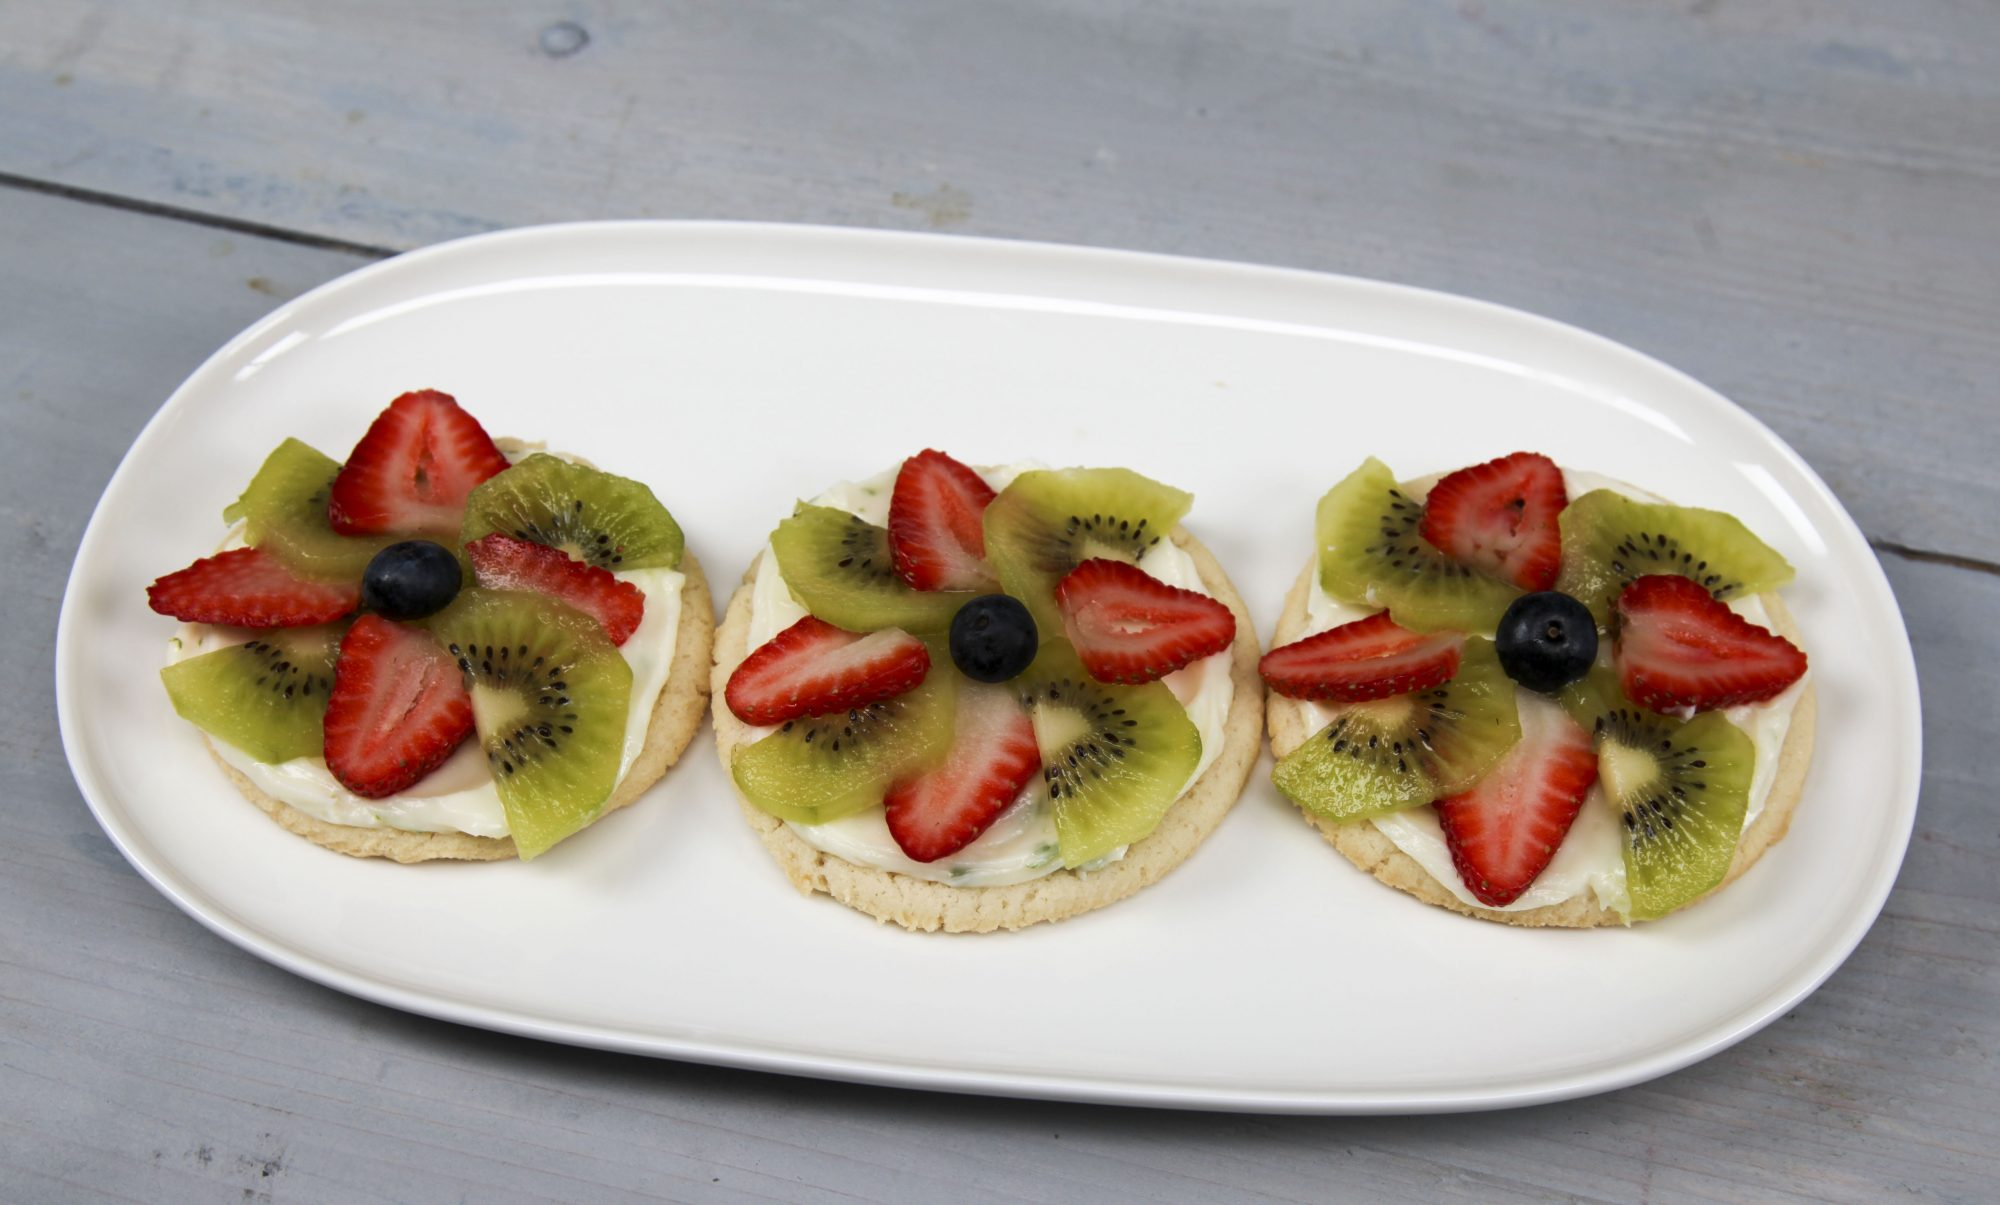 Toaster Oven Fruit Pizzas image